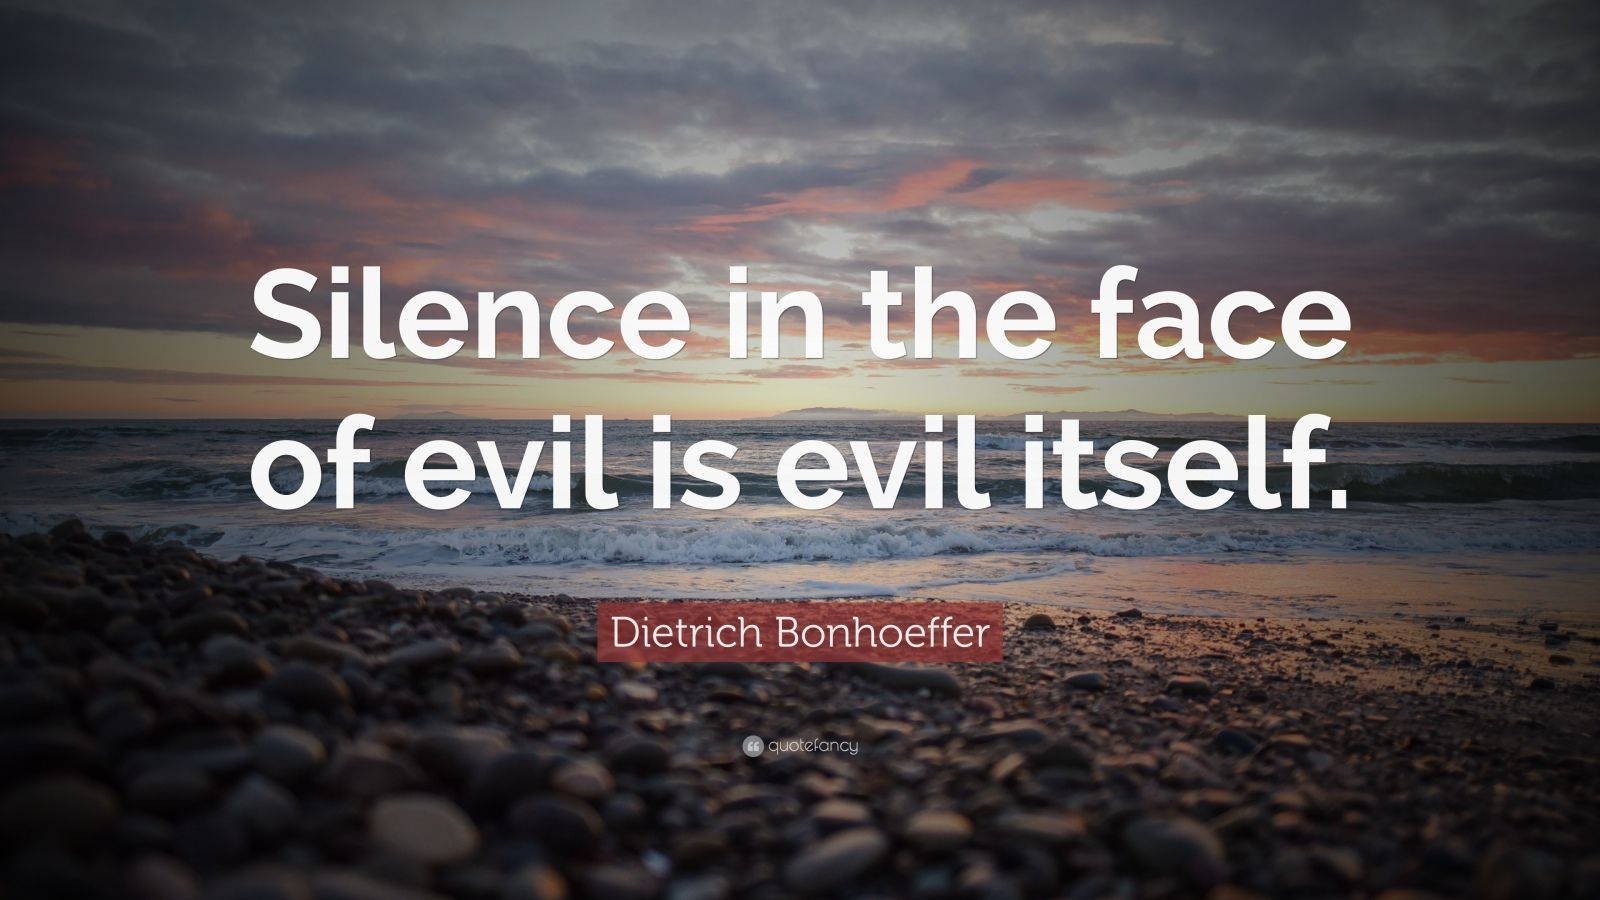 """Dietrich Bonhoeffer Quote: """"Silence in the face of evil is evil itself."""""""